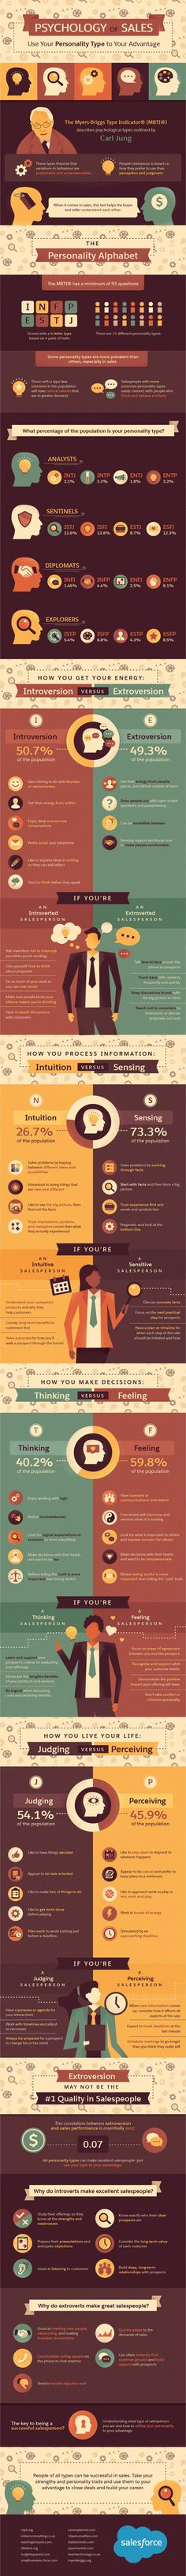 Psychology of Sales: Use Your Personality Type to Your Advantage #Infographic #Psychology #Sales